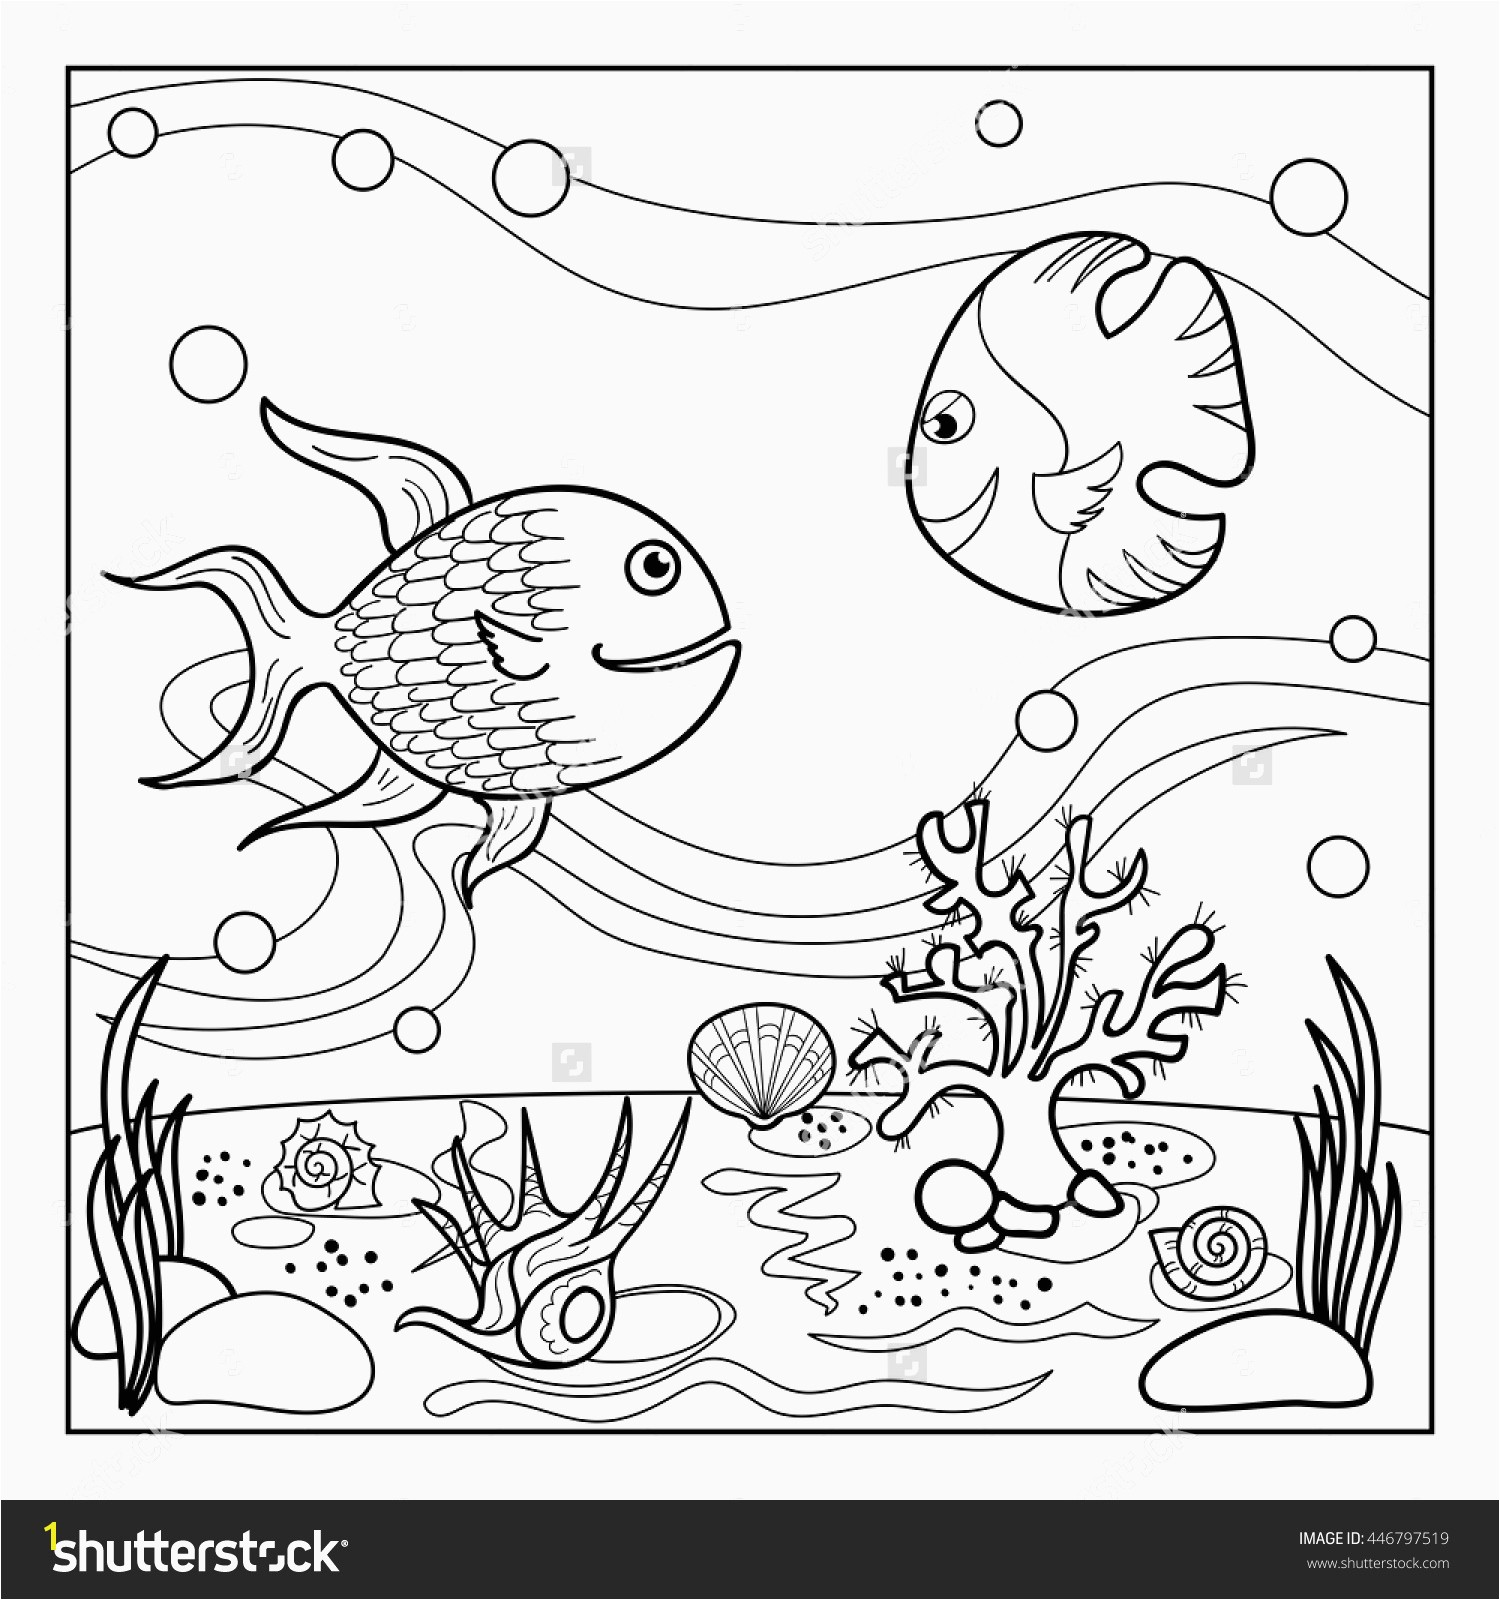 Spongebob Coloring Pages Free Printable Awesome Cool Coloring Page Unique Witch Coloring Pages New Crayola Pages